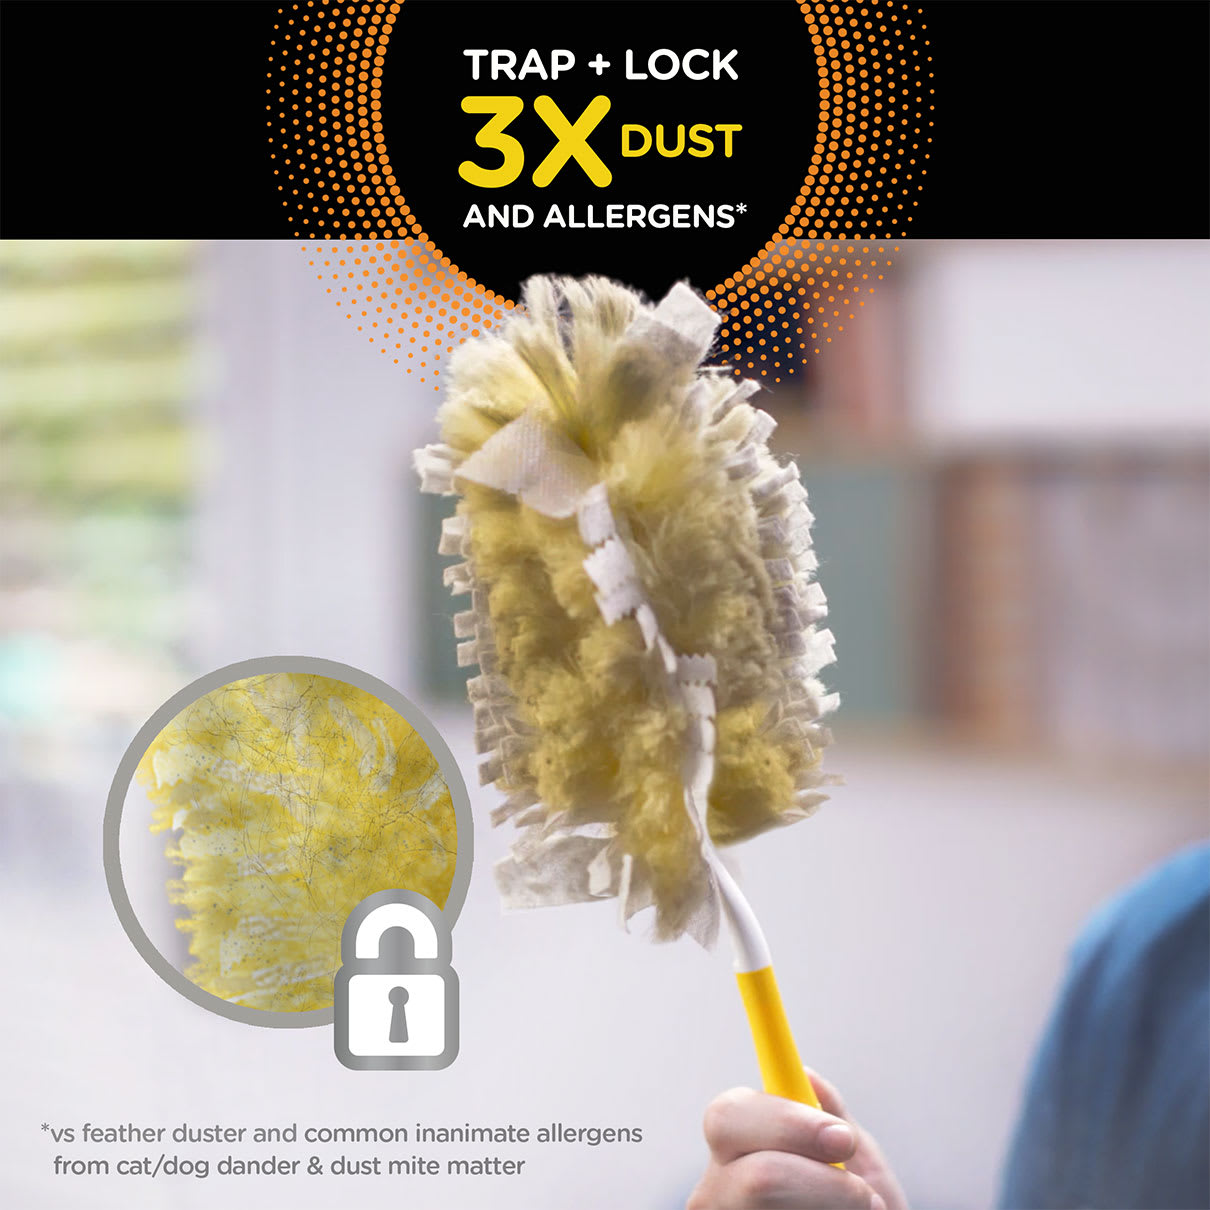 Swiffer Duster Traps and Locks 3 Times More Dust